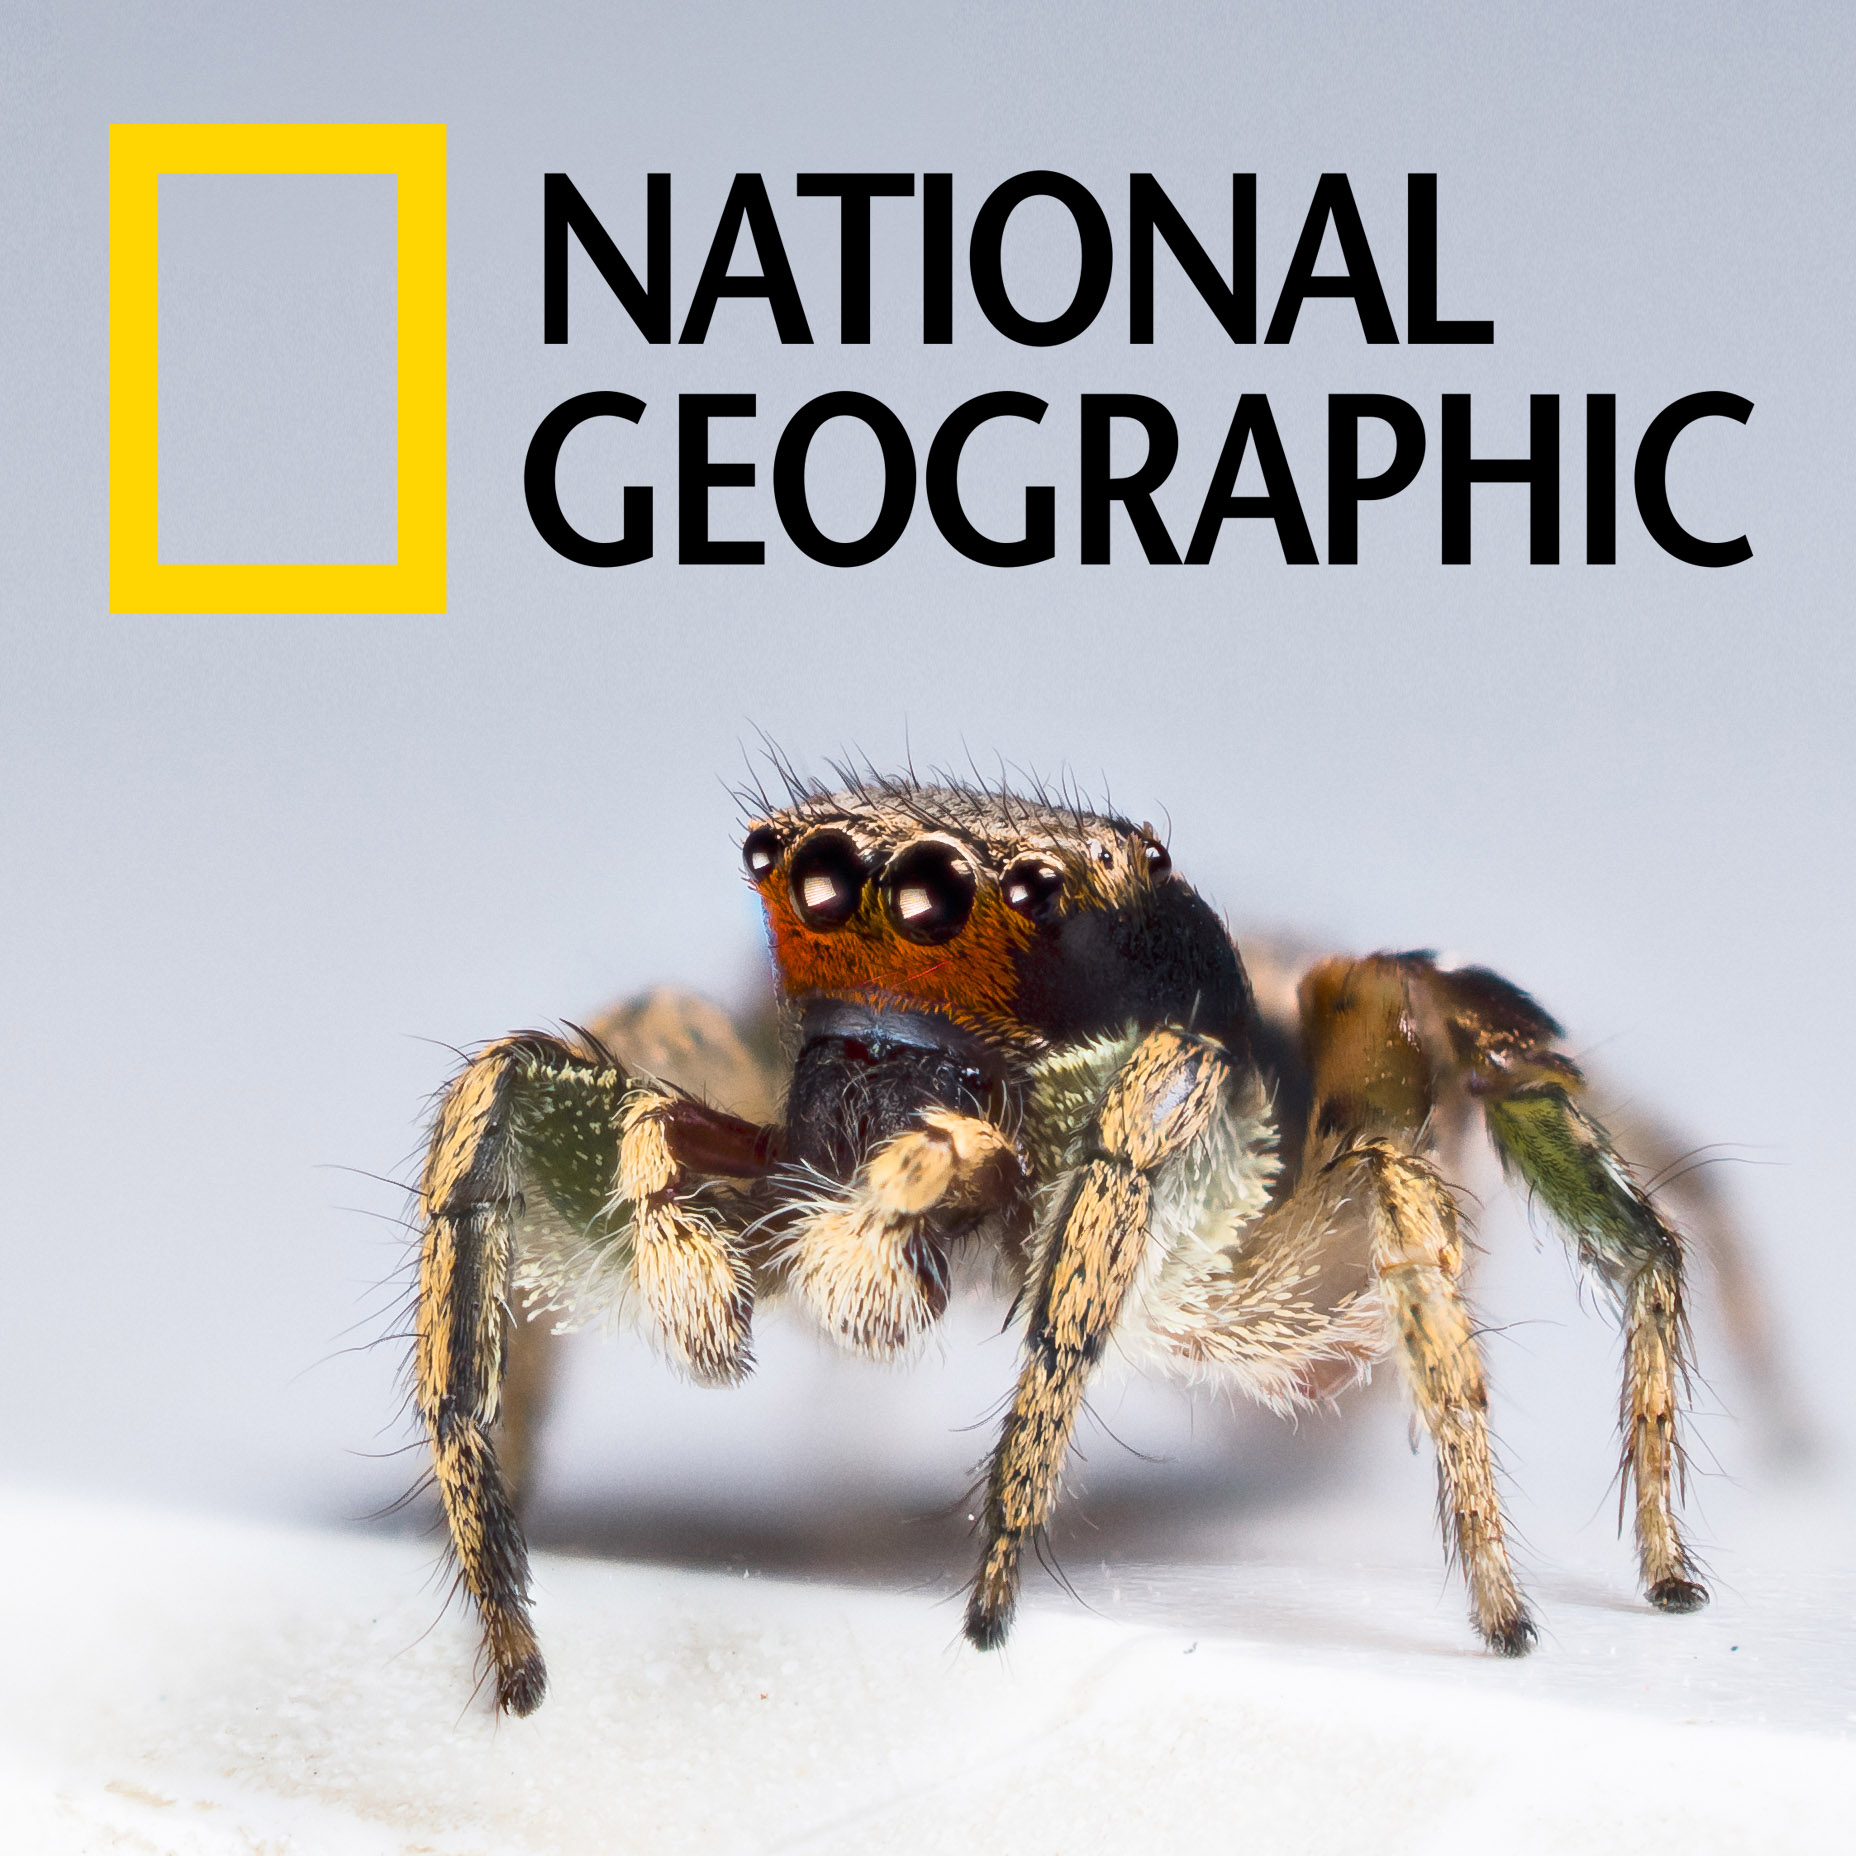 National Geographic coverage of our research on color vision in Habronattus pyrrithrix